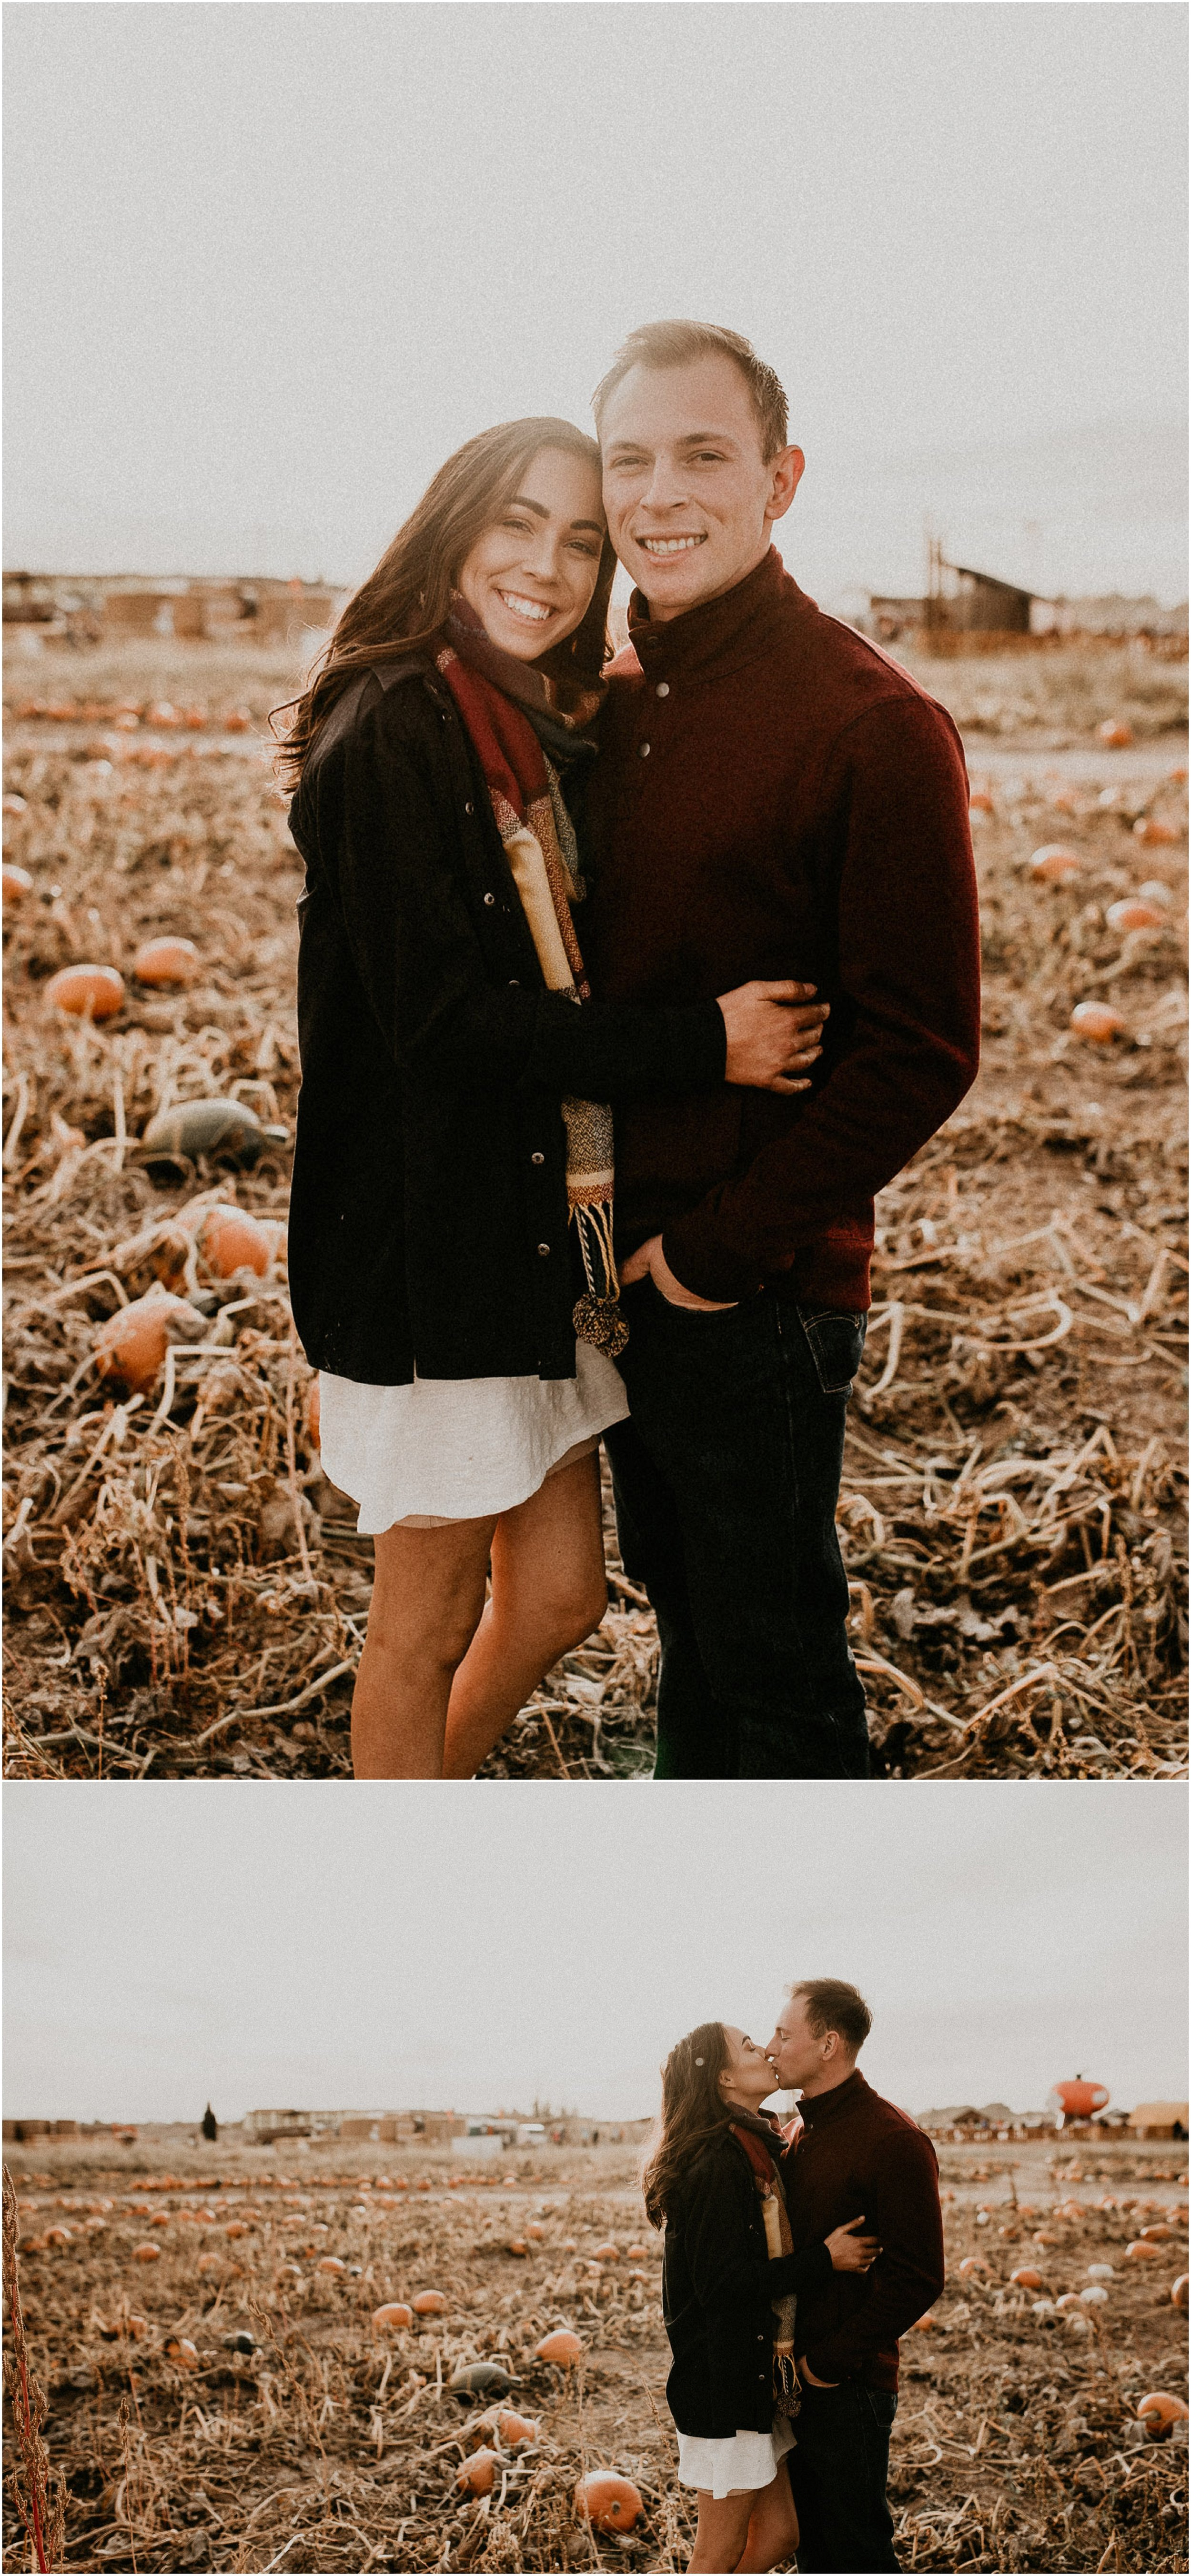 Boise Senior Boudoir Wedding Photographer Makayla Madden Photography Idaho Farmstead Corn Maze Fall Portrait Outfit Ideas Inspiration Plaid Scarf Pumpkin Patch Couples Kissing Engagement Session